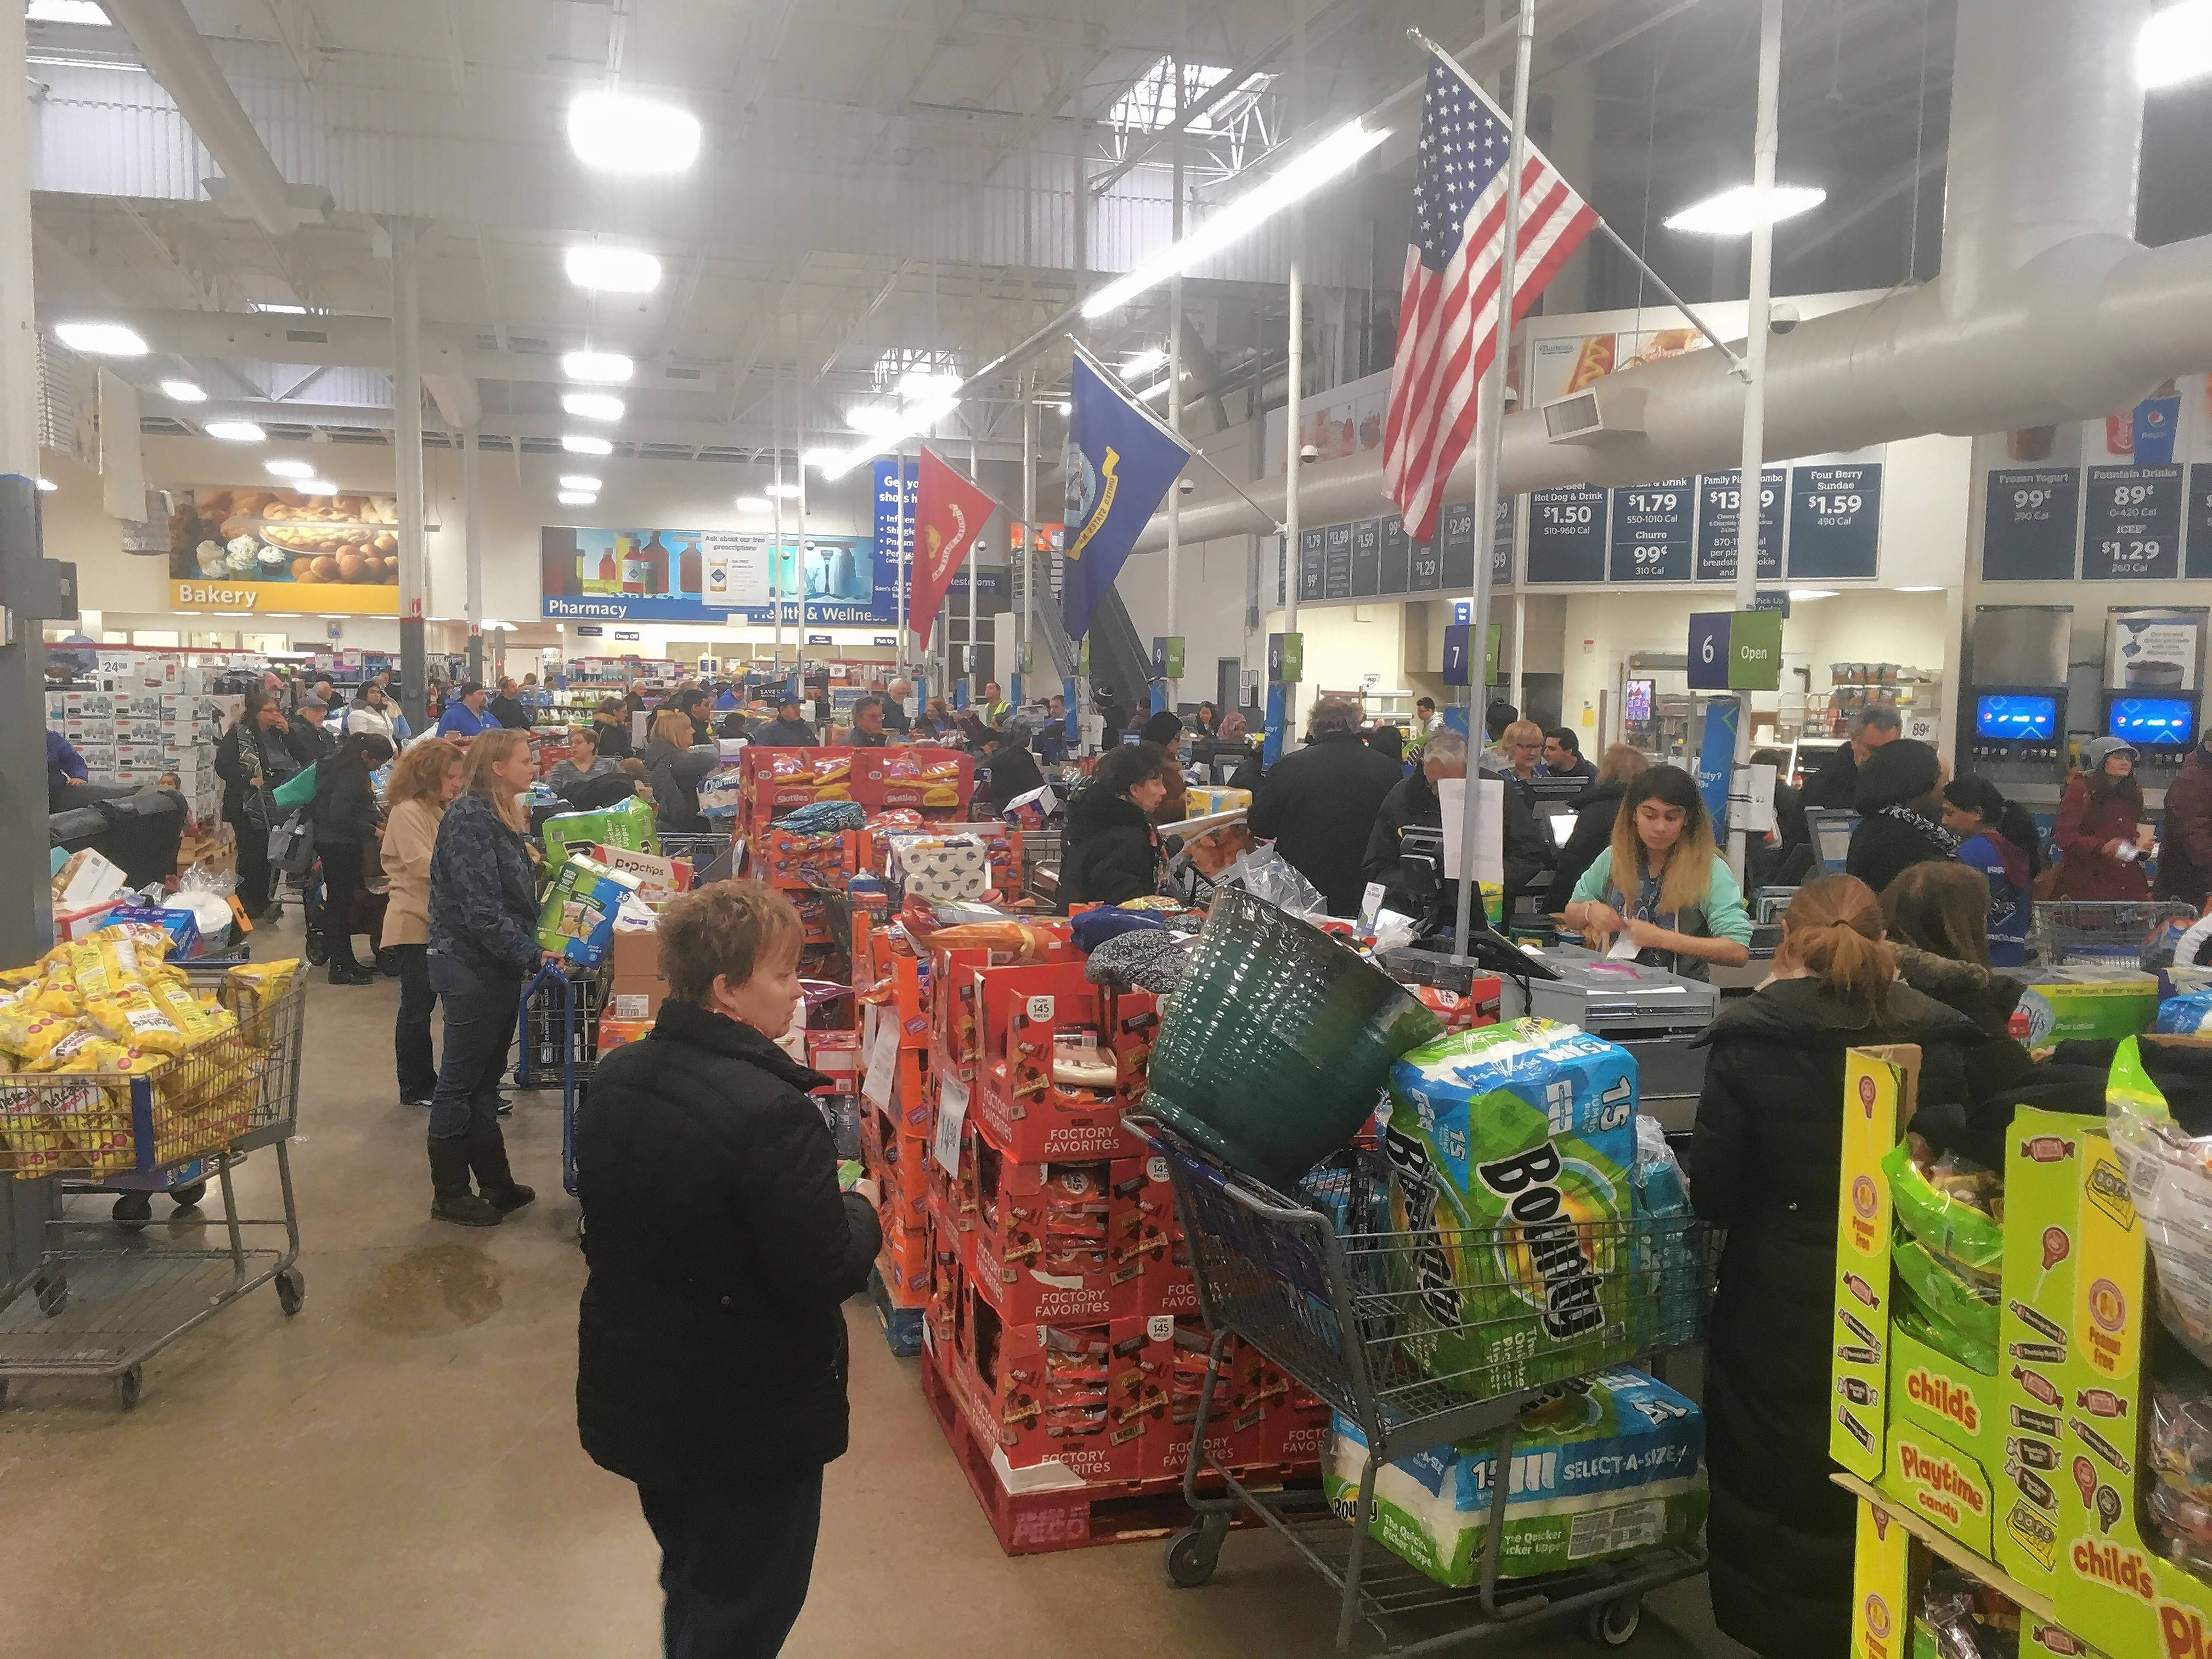 Amid the sales, how can you get a Sam's Club membership refund?